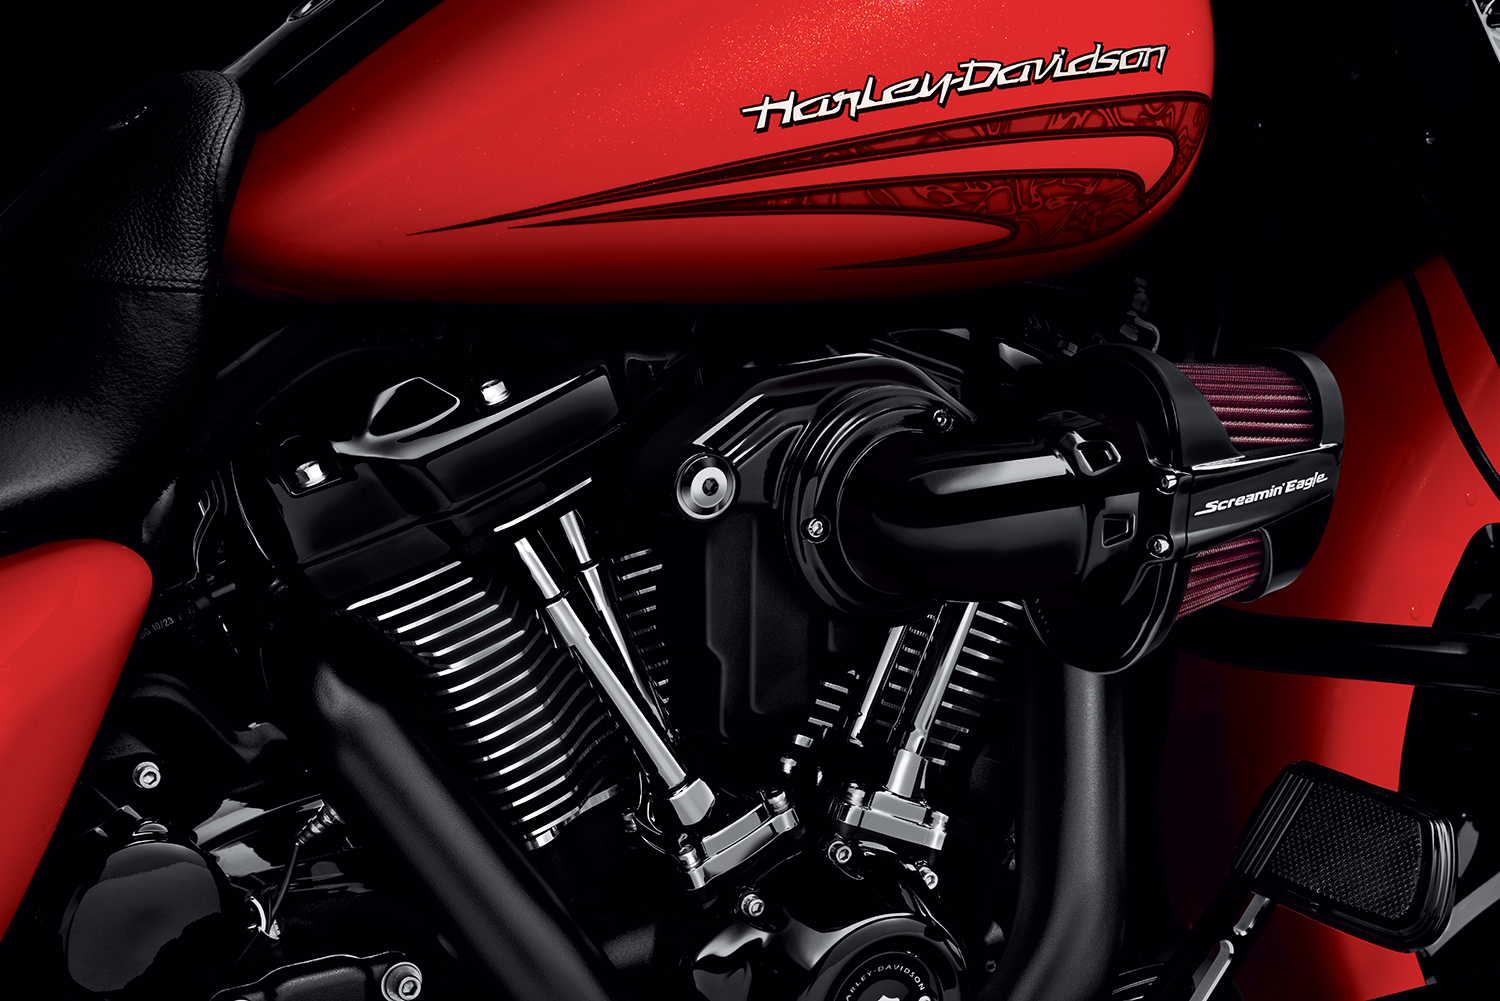 Screamin  Eagle Performance Upgrades Articles From Biggs Harley-Davidson® 8a249cd399f52